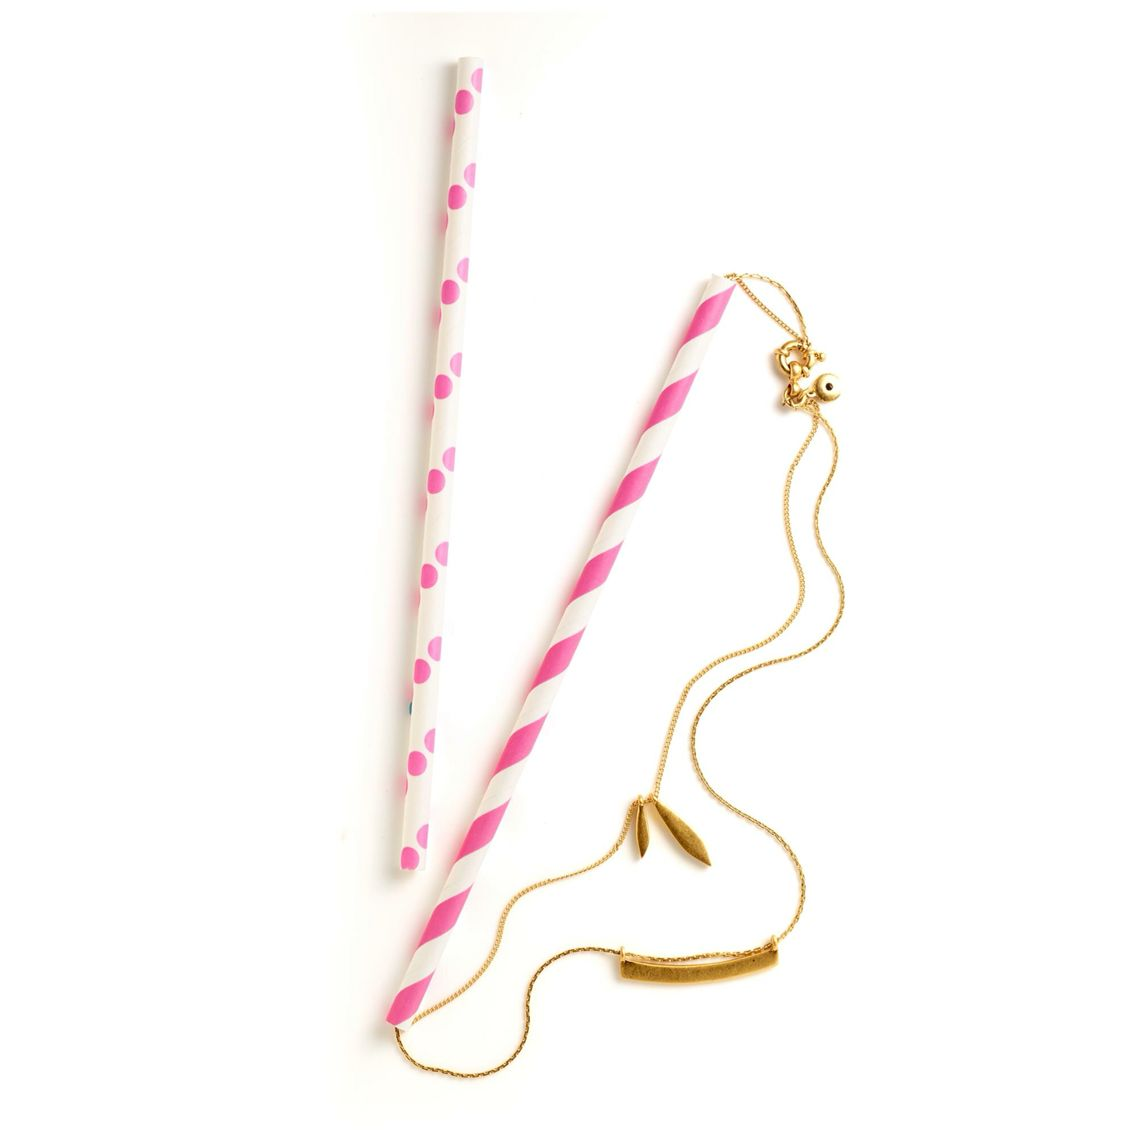 Avoid Tangled Necklaces - Use a Paper or Steel Straw to Keep Necklaces Sorted - NO Plastic Straws!